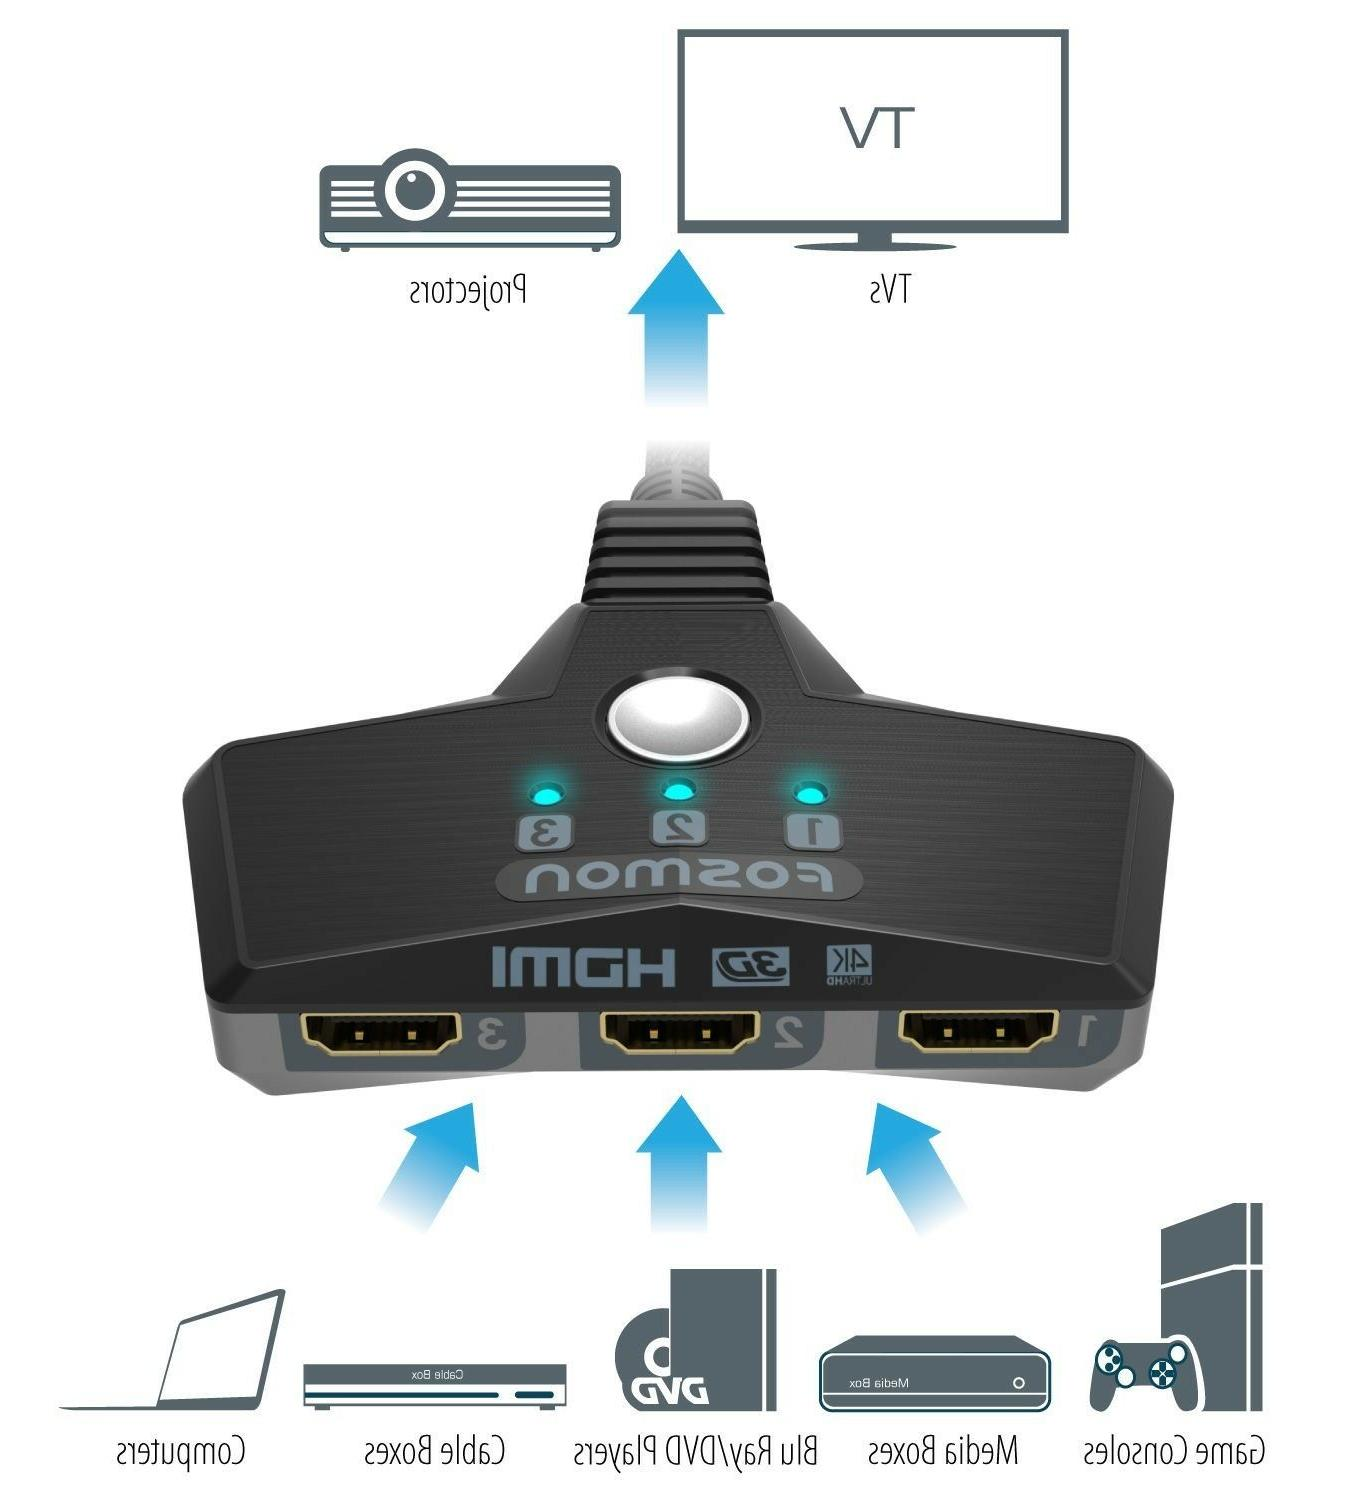 Fosmon 3x1 Speed HDMI Switch with Braided Pigtail